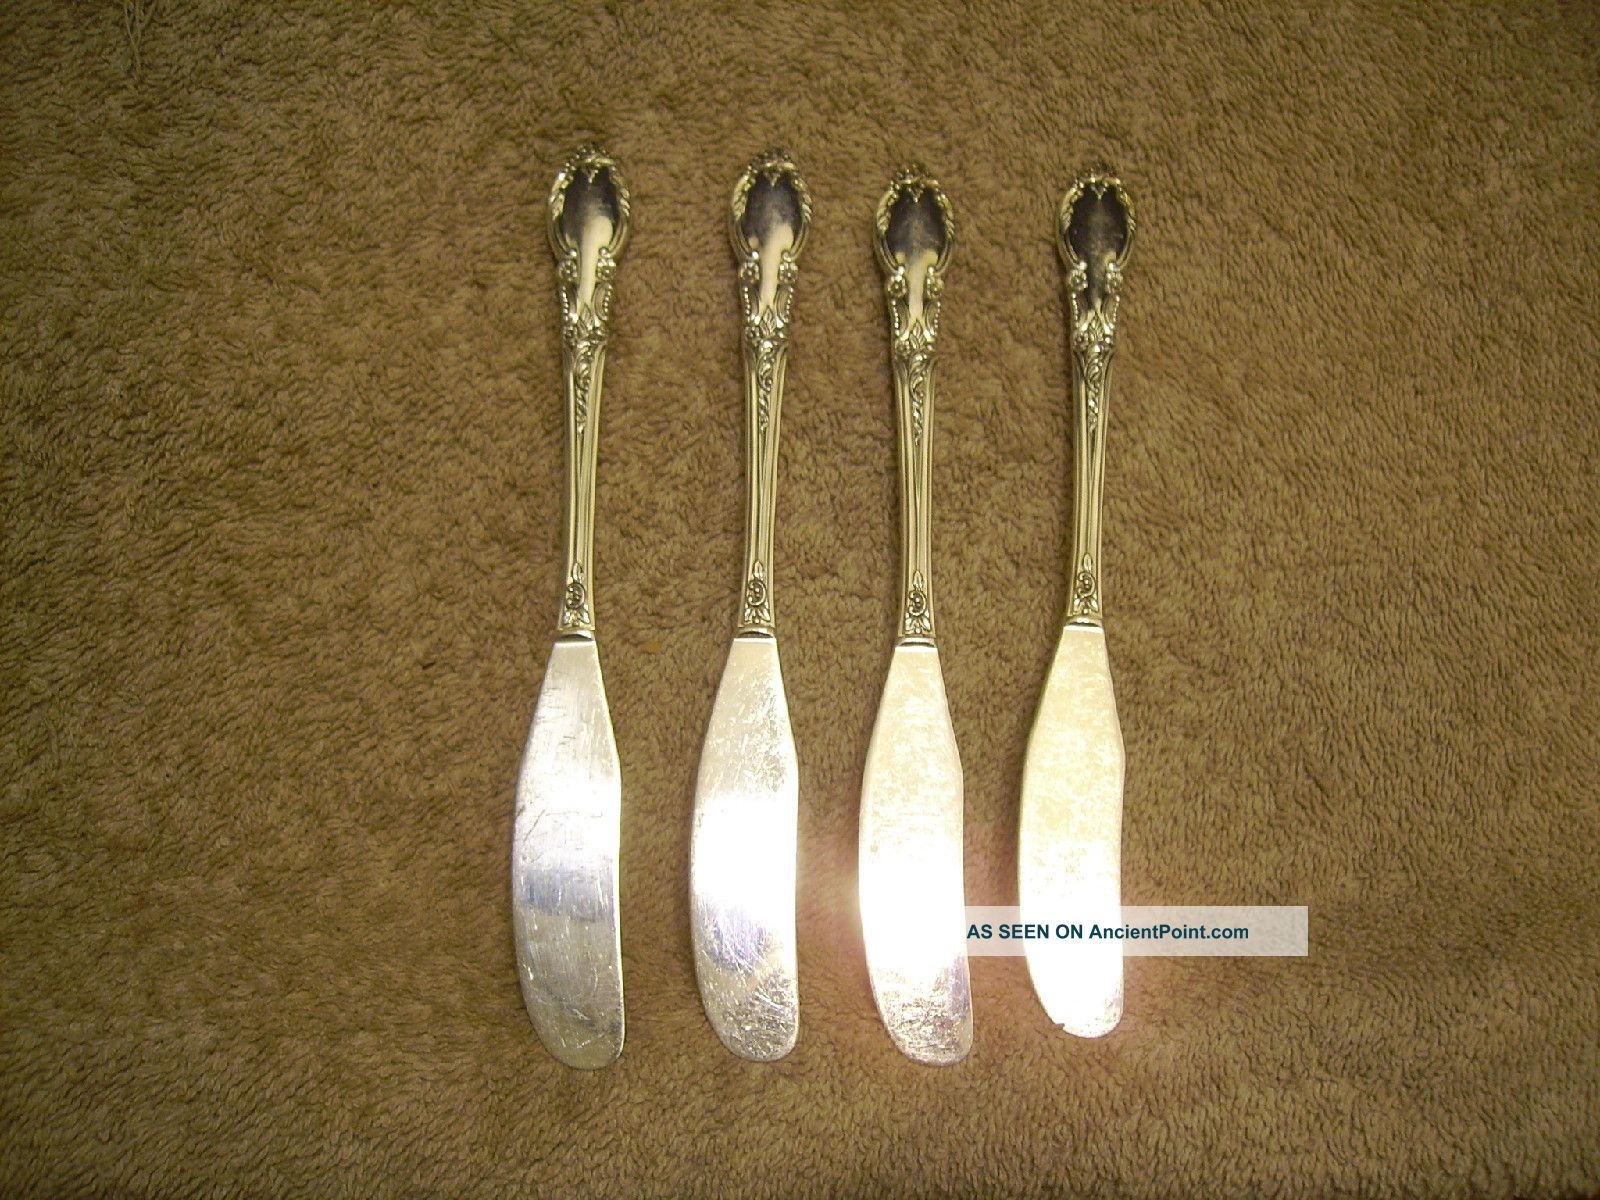 4 Rogers 1952 Enchantment Individual Butter Spreaders Oneida Ltd London Town Oneida/Wm. A. Rogers photo